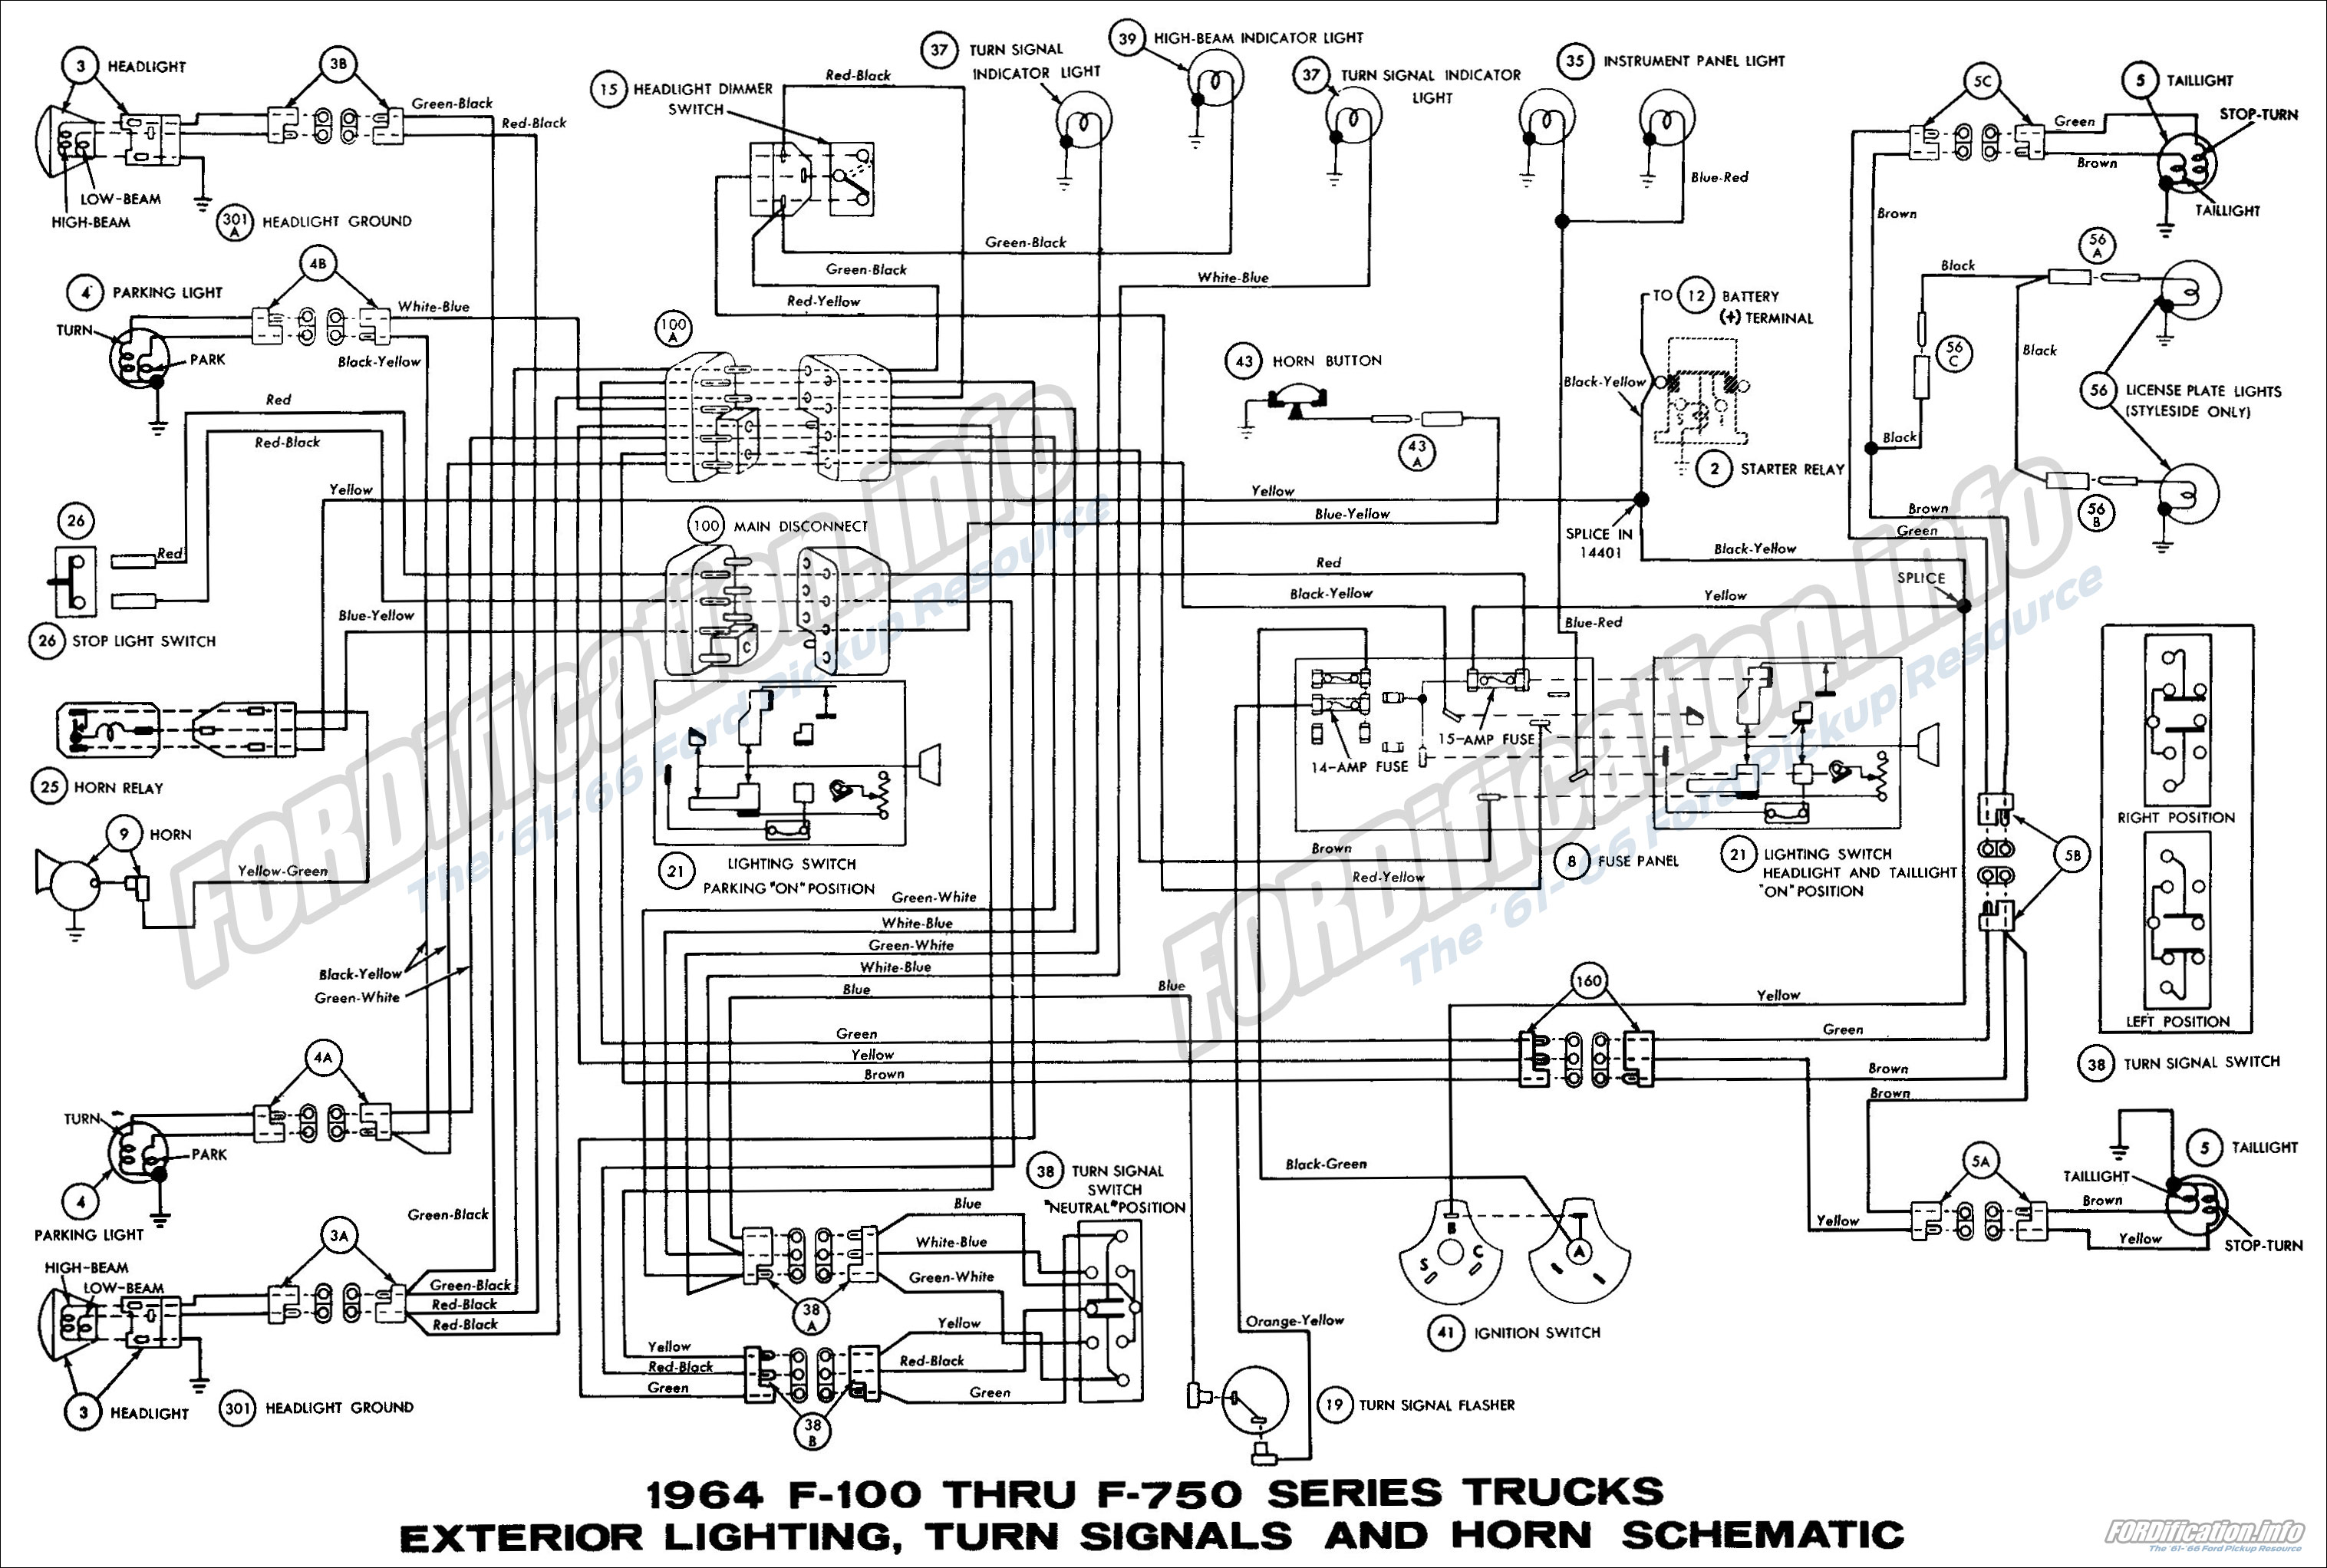 Wiring Diagram For 1968 Ford F250 - Wiring Diagrams Hubs